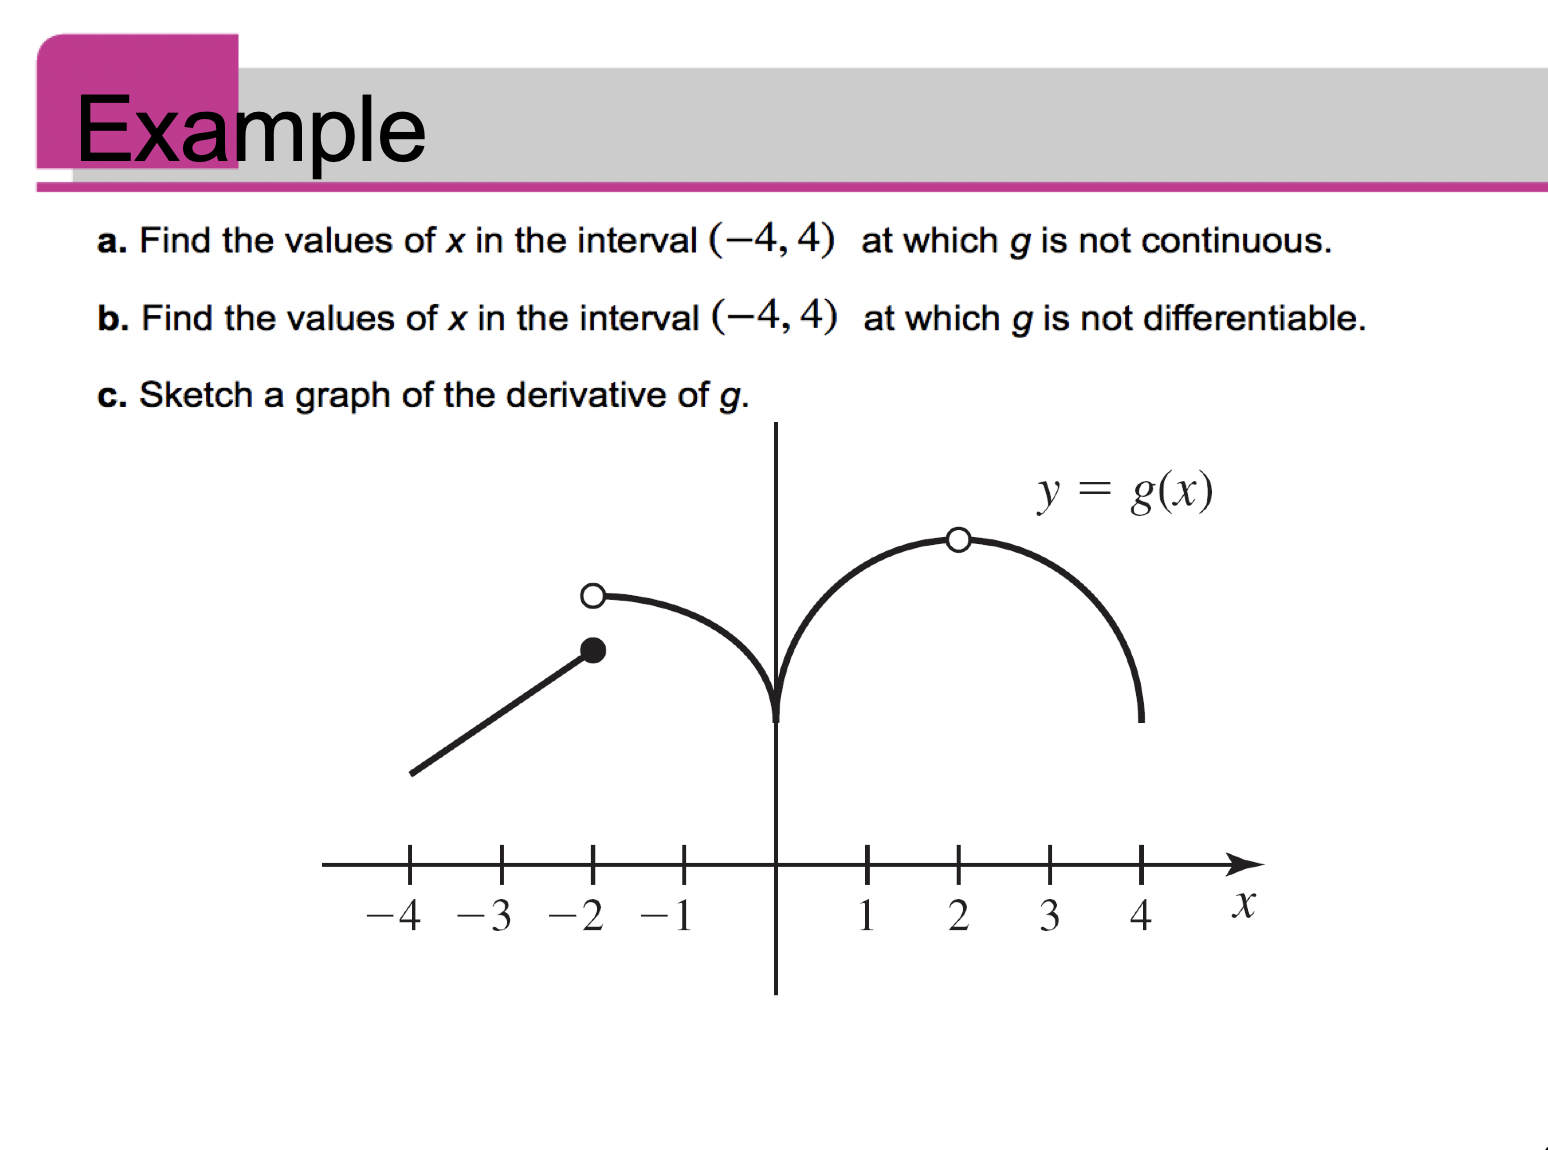 Example a. Find the values of x in the interval (-4, 4) at which g is not continuous b. Find the values of x in the interval (-4, 4) at which g is not differentiable. c. Sketch a graph of the derivative of g. y g(x) + + х -4 -3 -2 -1 2 3 4